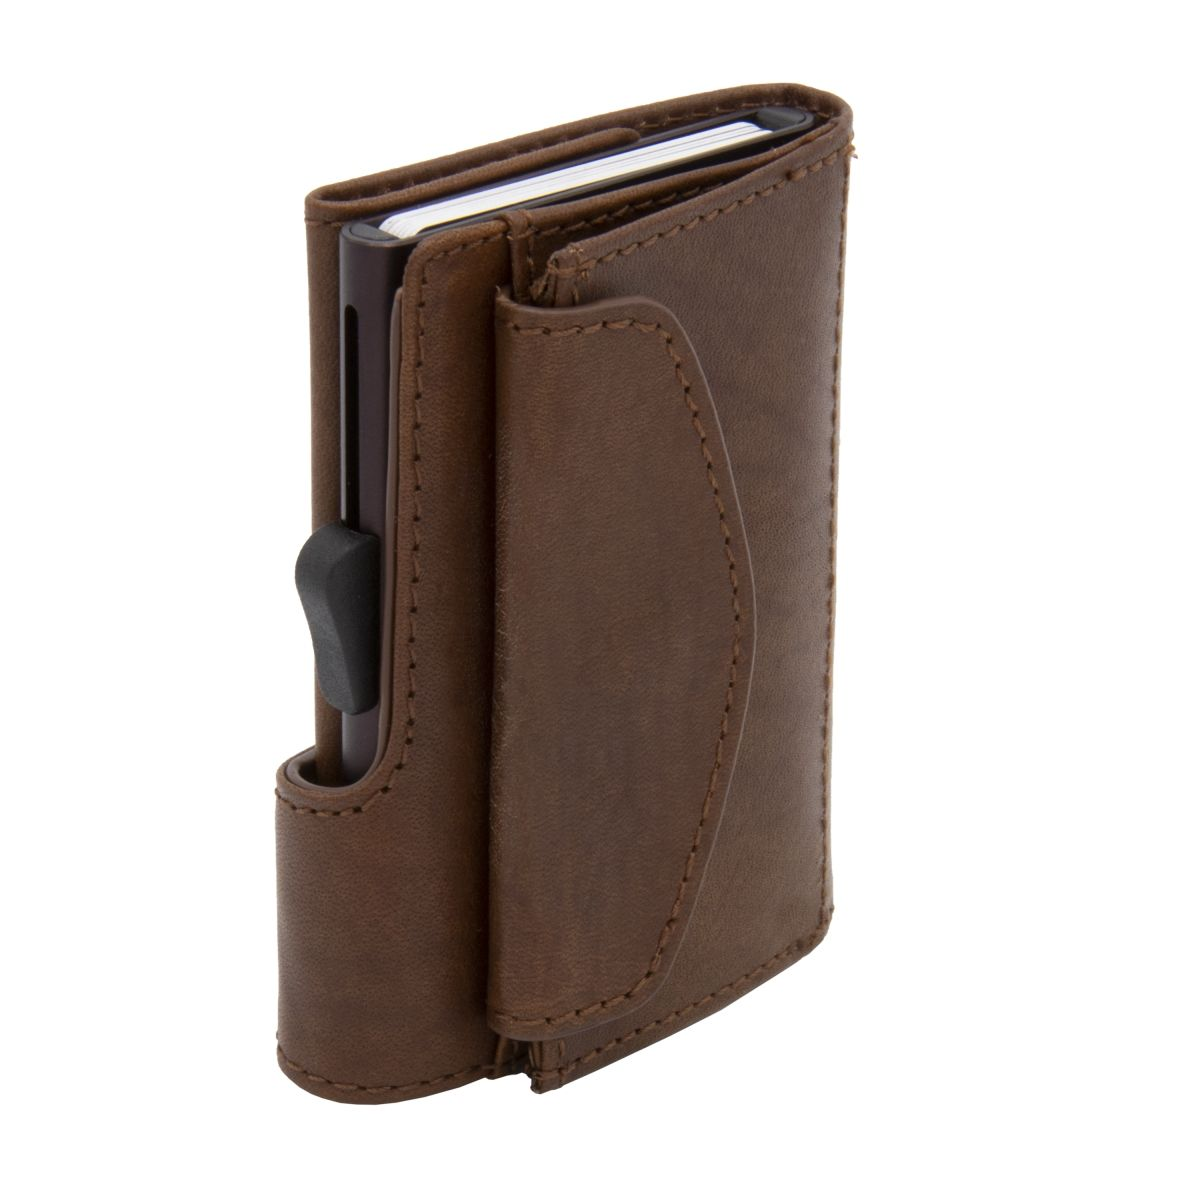 Aluminum Card Holder with Genuine Leather and Coin Pouch - Brown